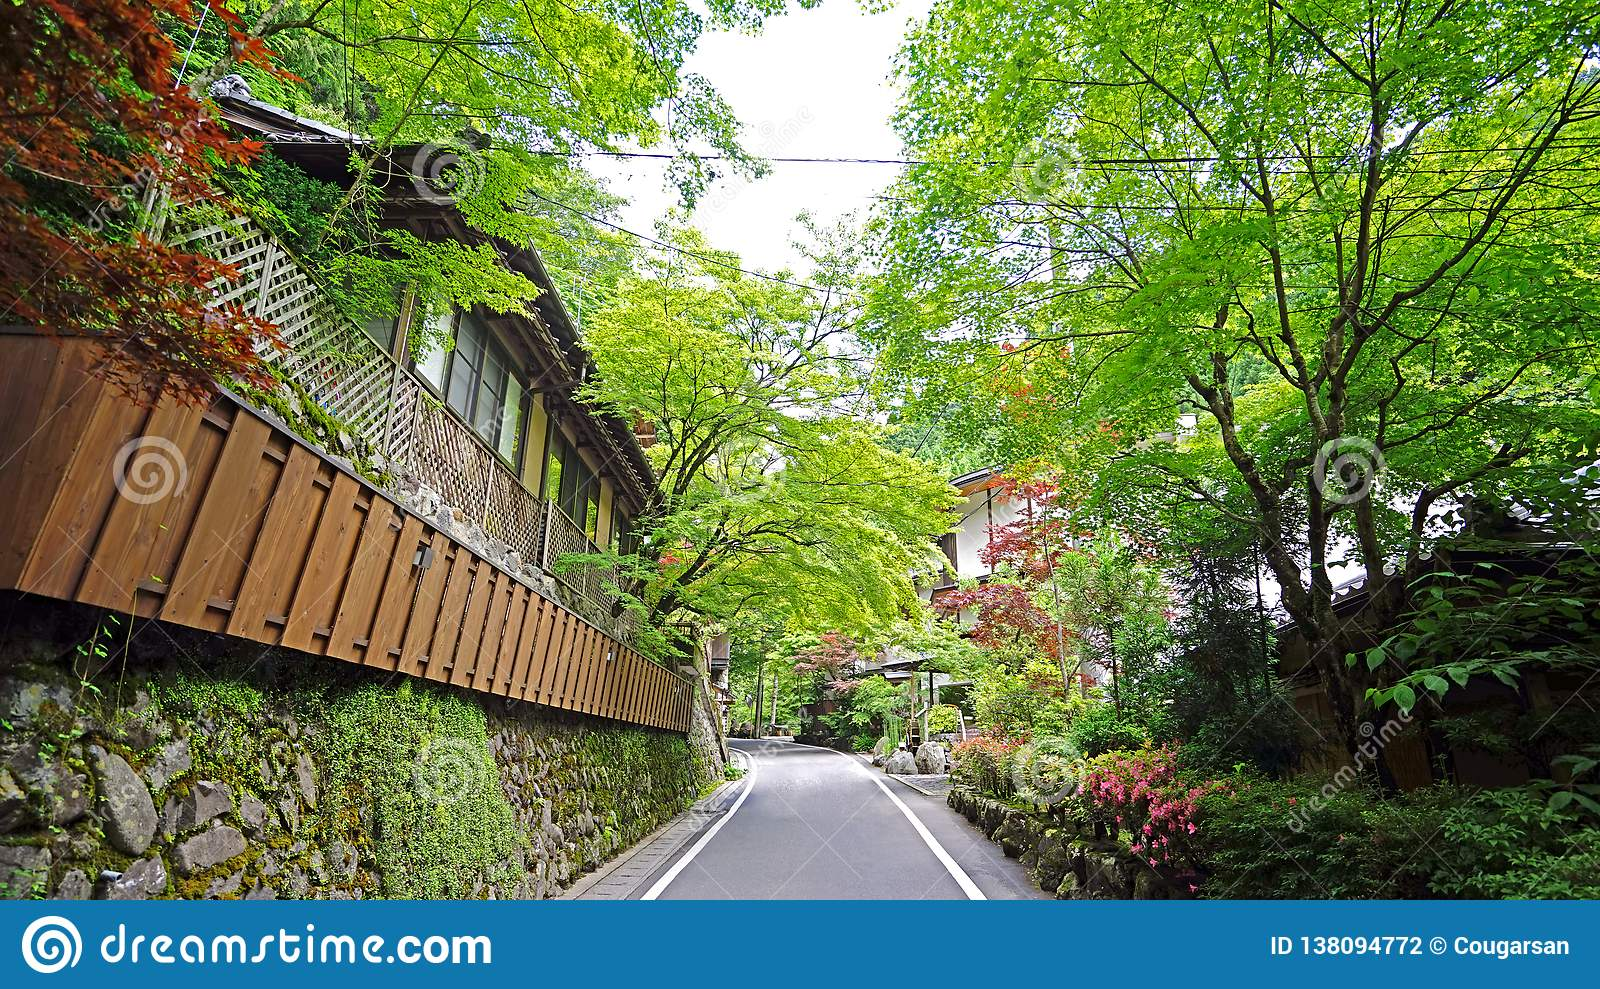 Japan Traditional Building, Zen Garden, Village Footpath, Green Plants